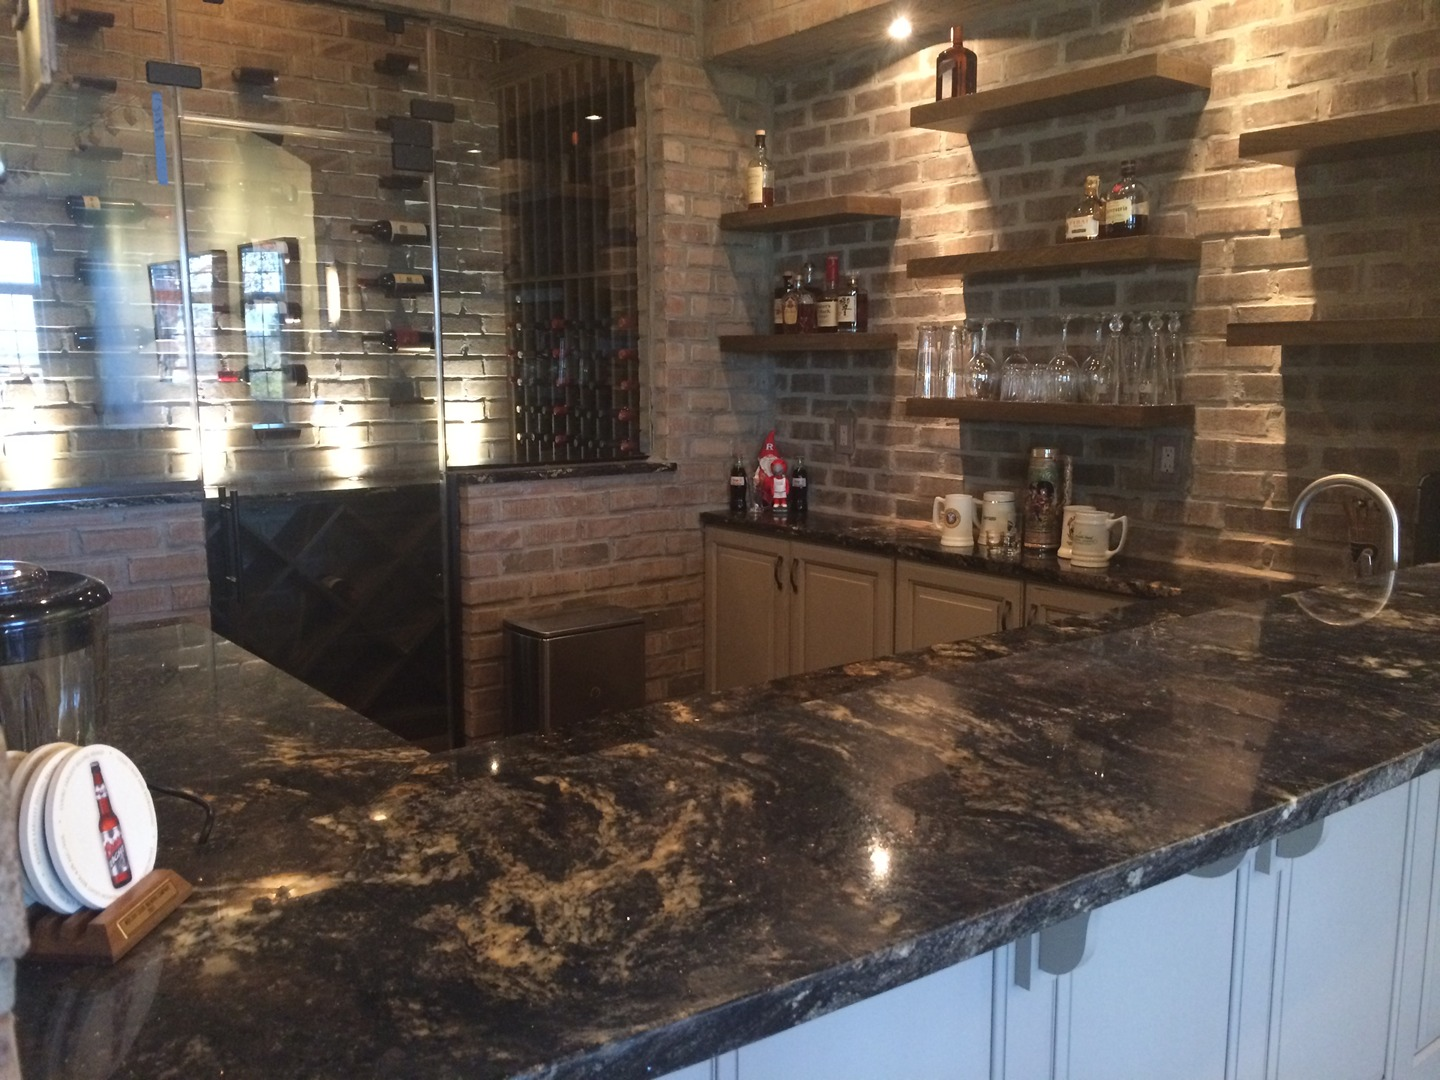 customkitchenbaltimore custom kitchen countertops CKC offers a wide variety of Natural and Engineered stone options From sleek elegance to dramatic veining there is a color and pattern to match any style